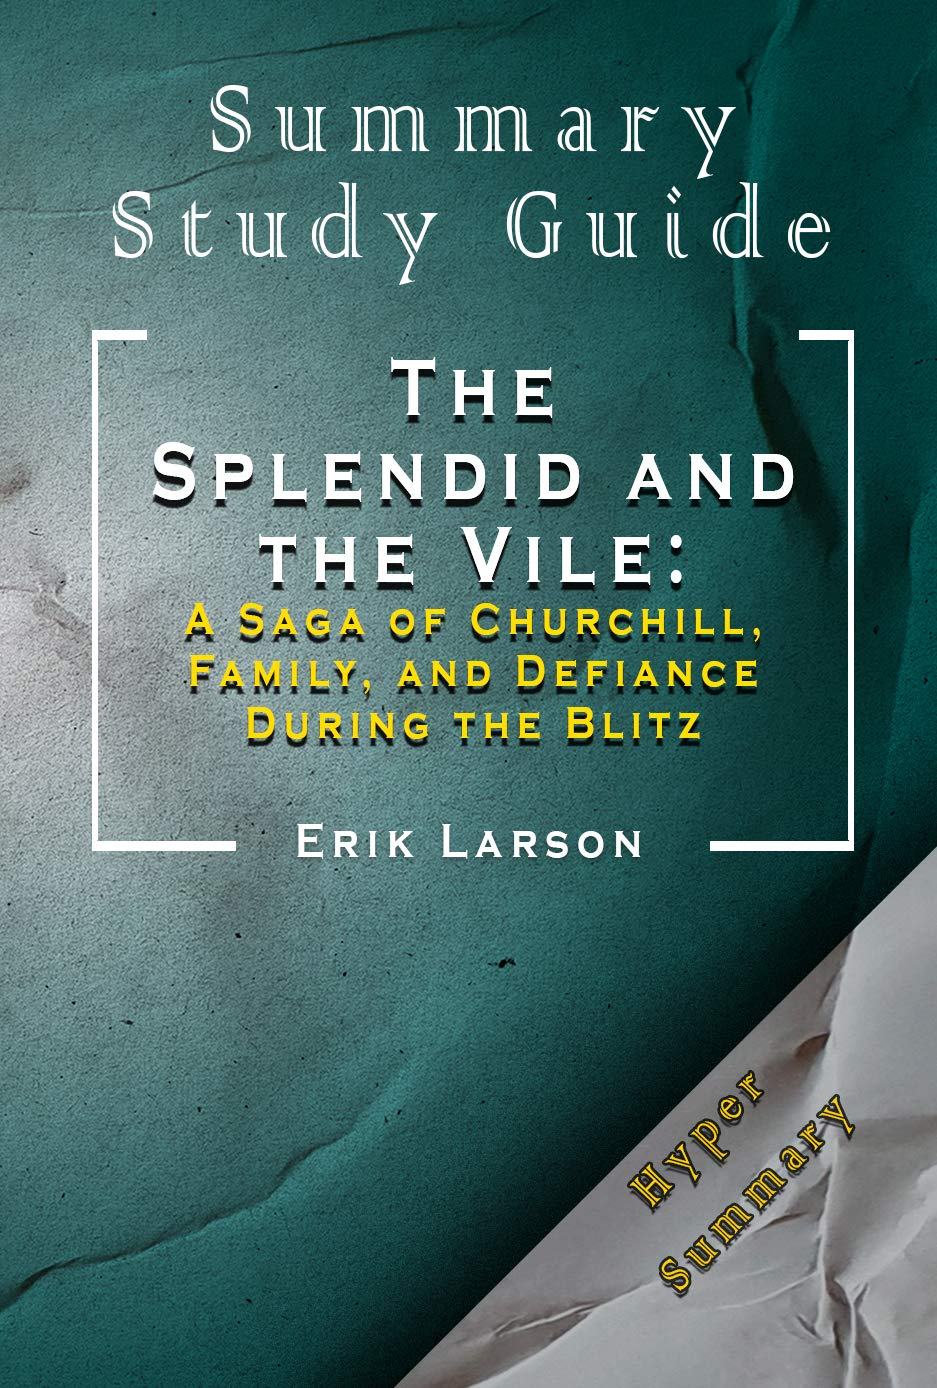 Summary Of The Splendid and the Vile: A Saga of Churchill, Family, and Defiance During the Blitz: Erik Larson